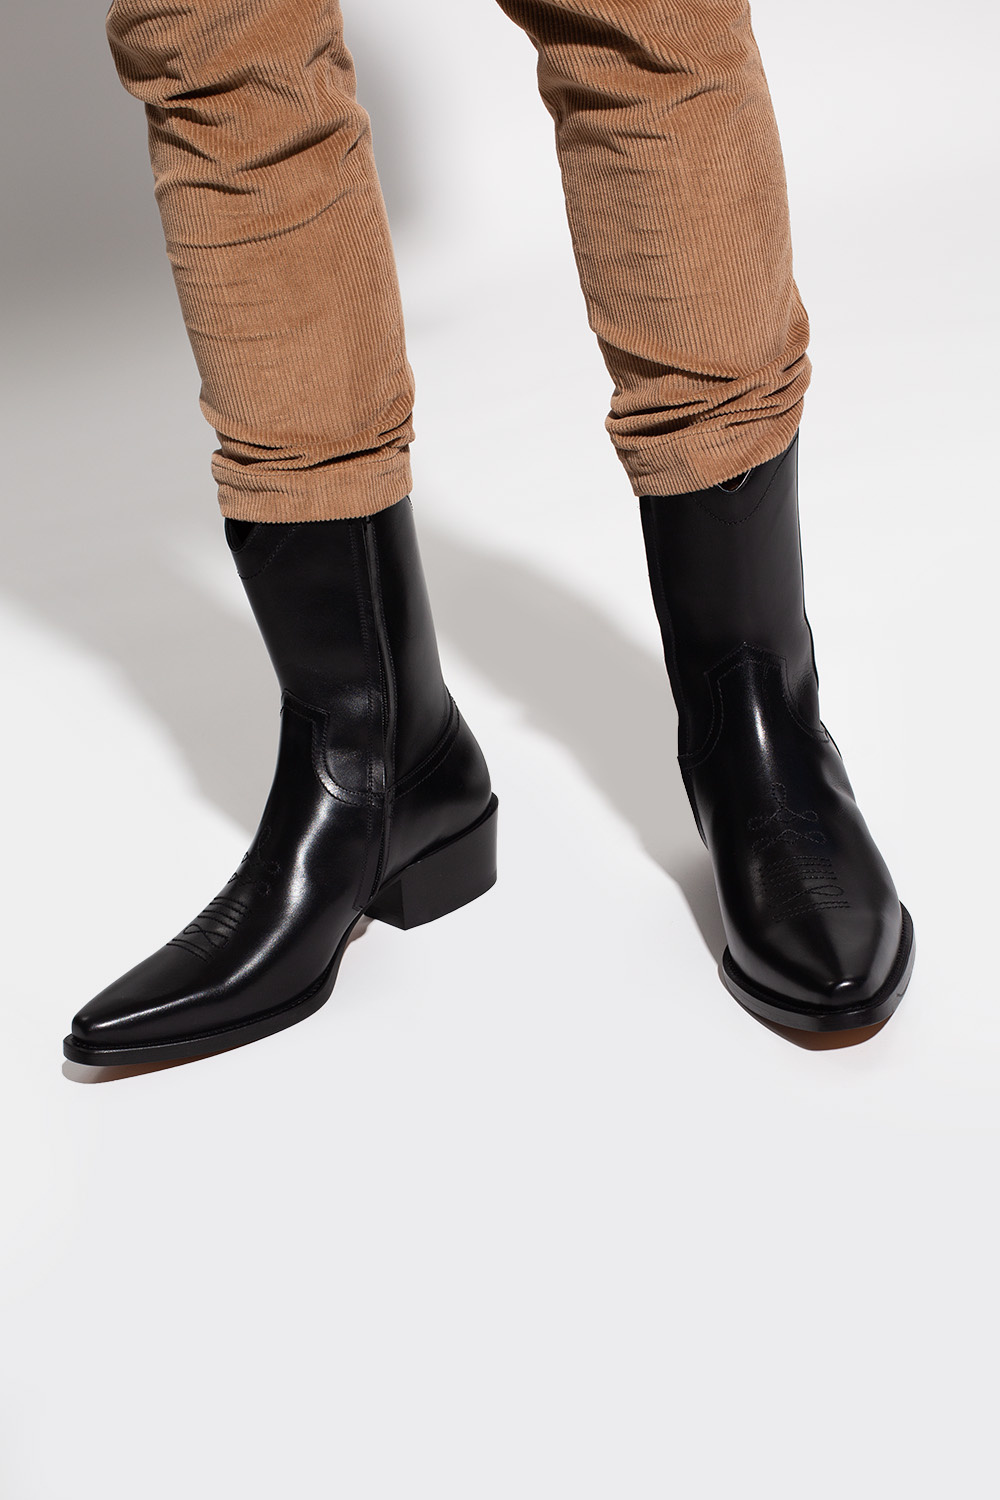 Dsquared2 'Wanderer' leather ankle boots